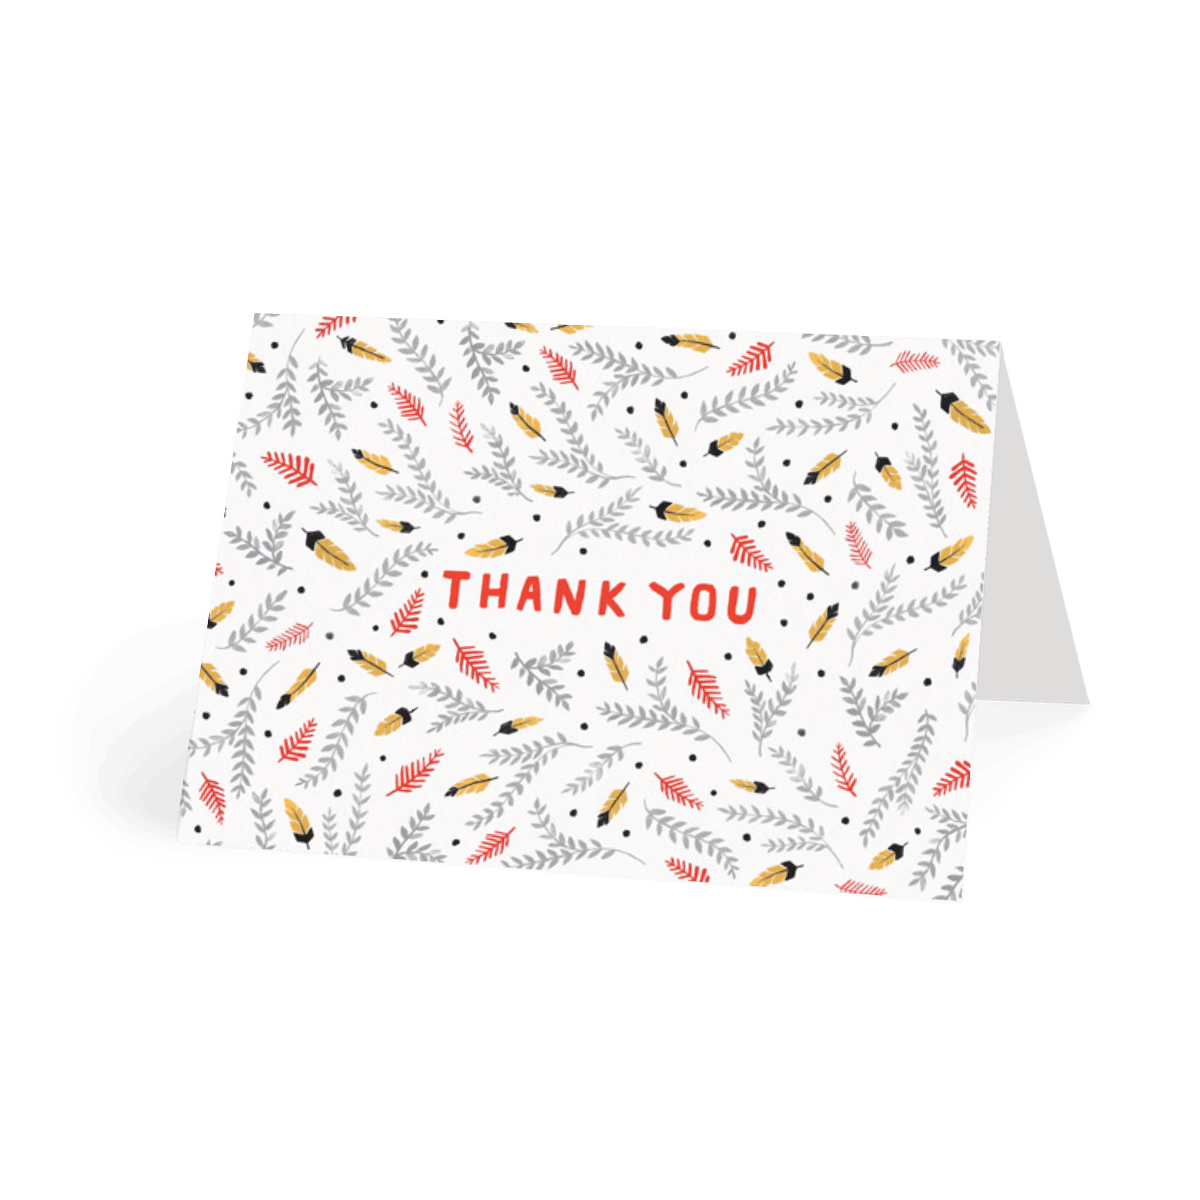 Https%3a%2f%2fwww.papier.com%2fproduct image%2f17021%2f14%2fthank you feathers 4478 front 1485346348.png?ixlib=rb 1.1